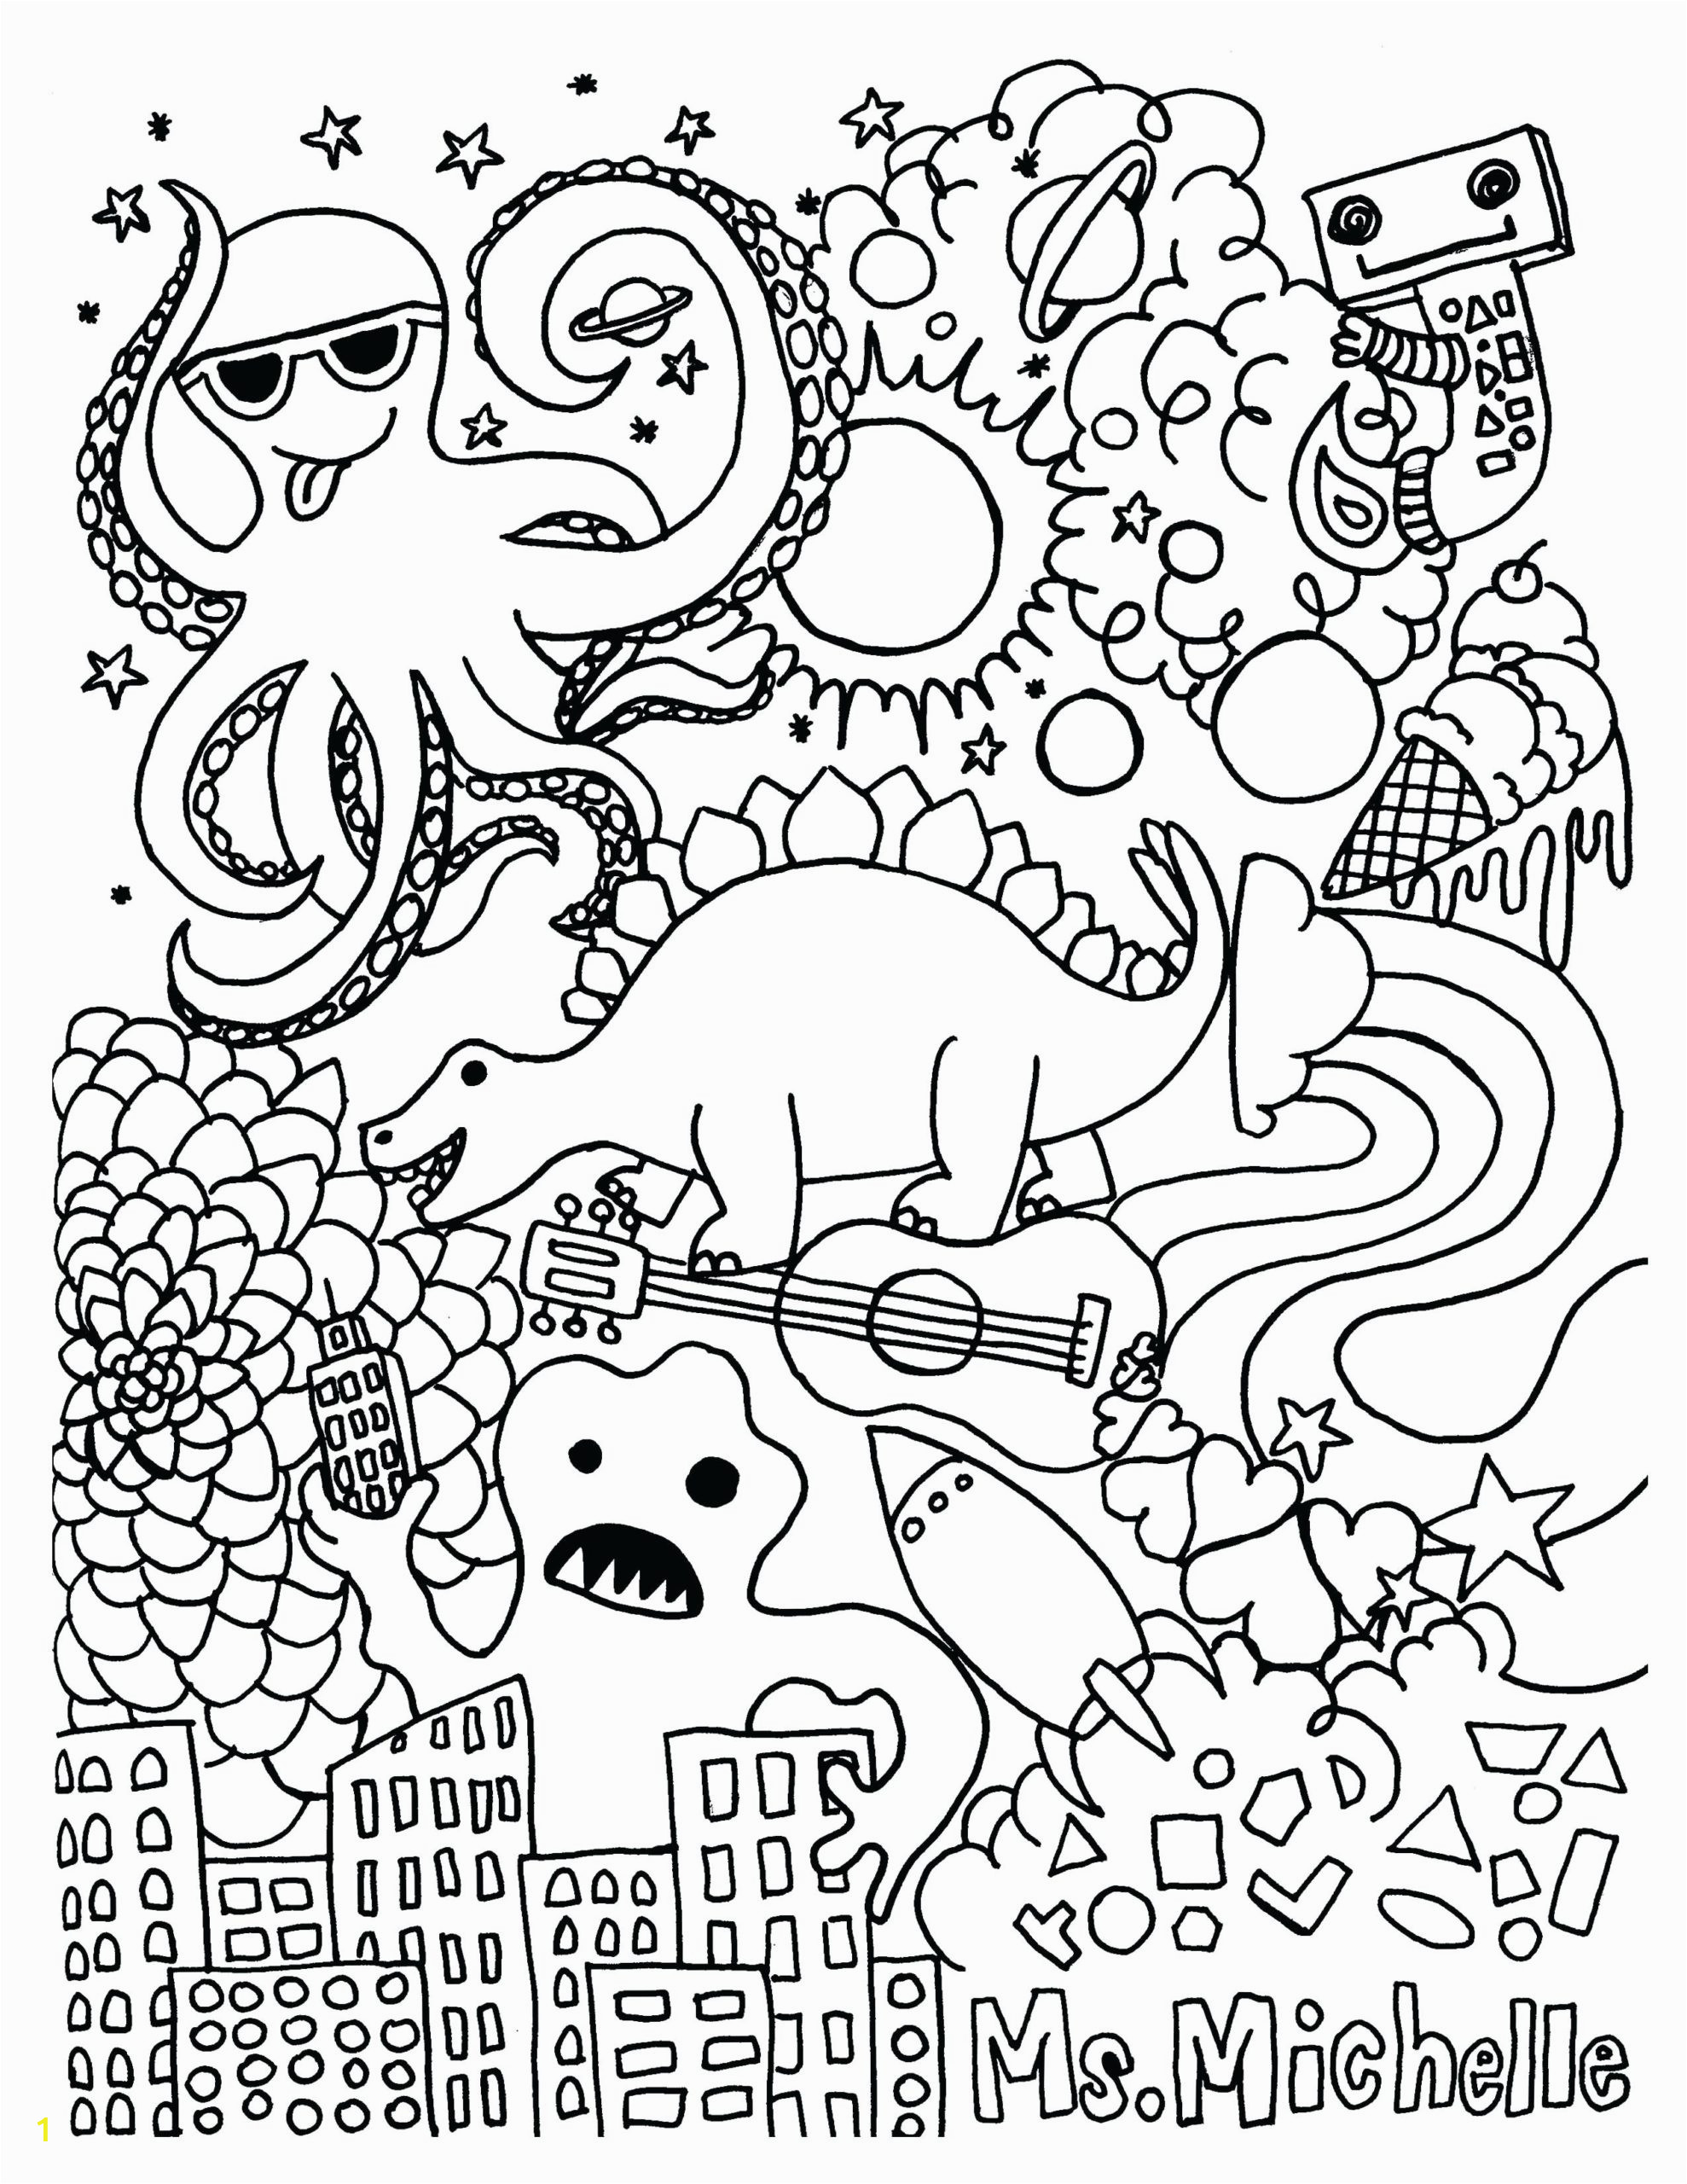 basic colouring charlie brown christmas coloring pages stranger things book minnie enchanted forest finished day of the skull page muscle car steven universe animal for adults lost